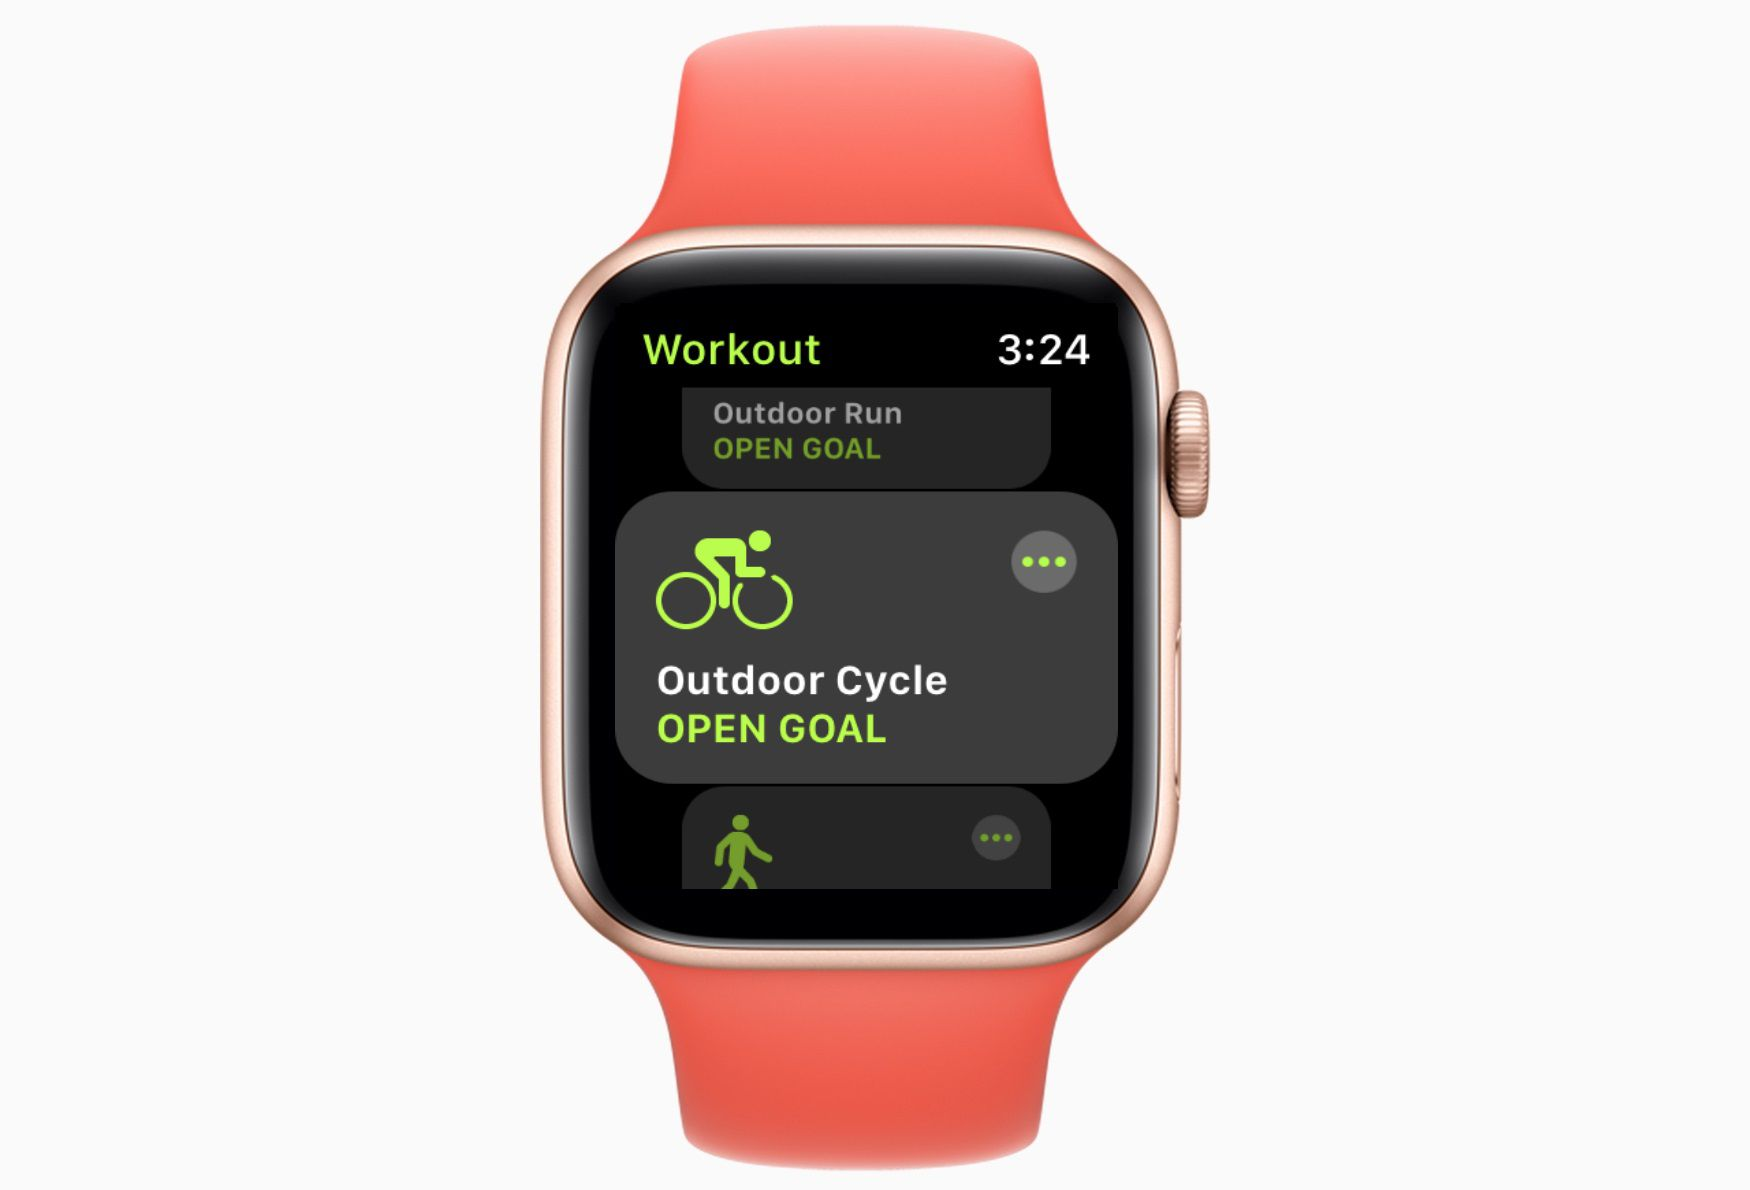 Apple Watch workout screen with Outdoor Cycle on the screen